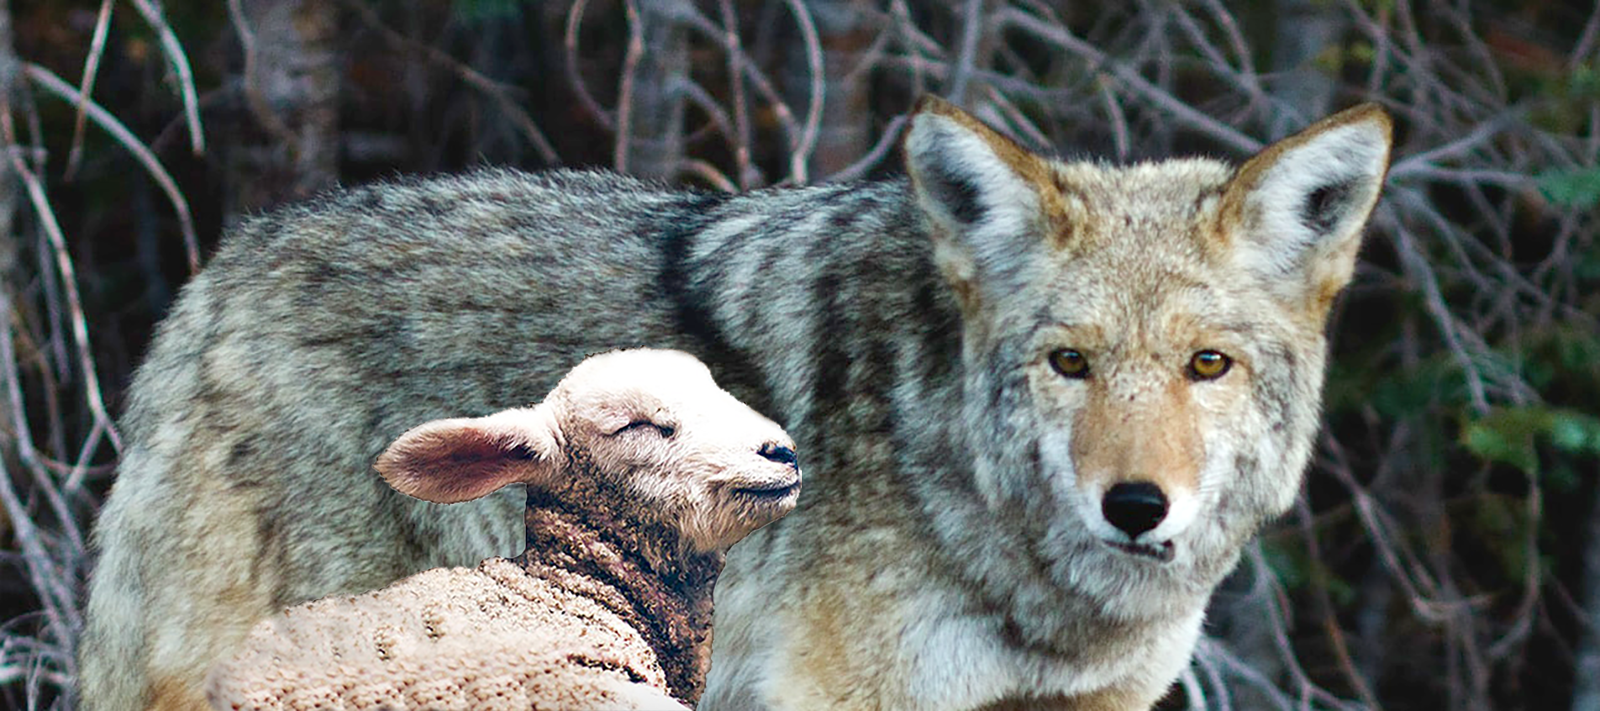 December 16: The Wolf and Lamb